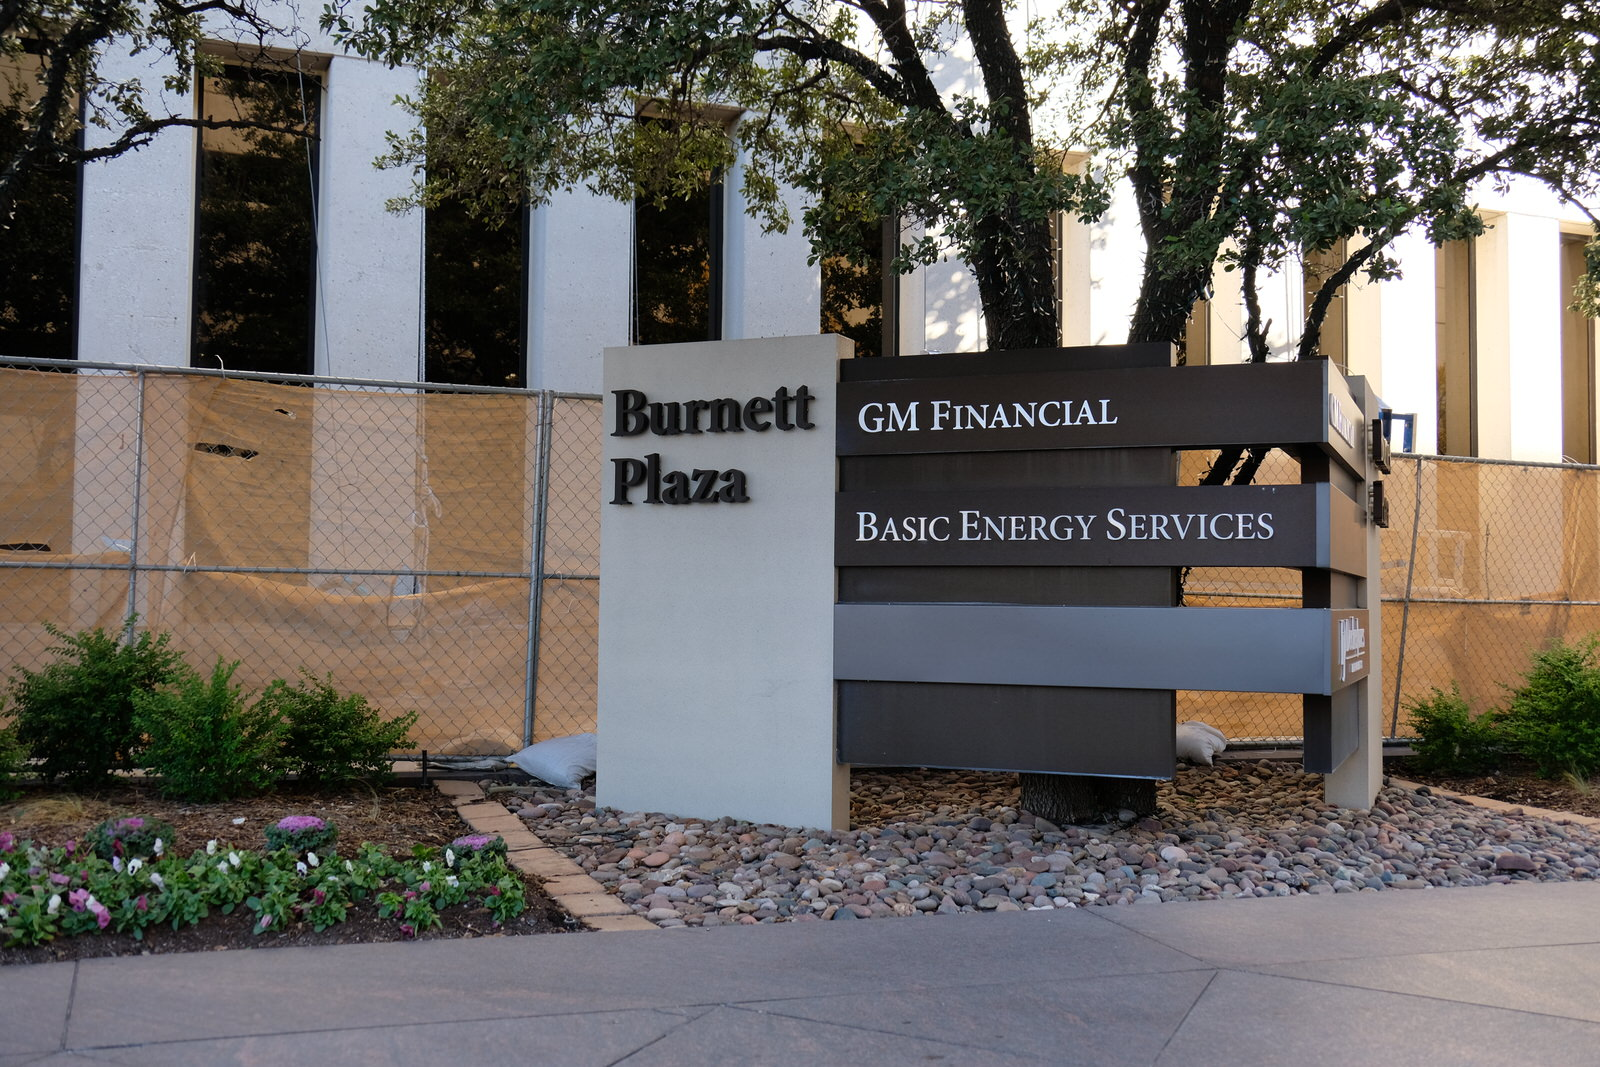 Basic Energy Services Mergers and Acquisitions Summary | Mergr